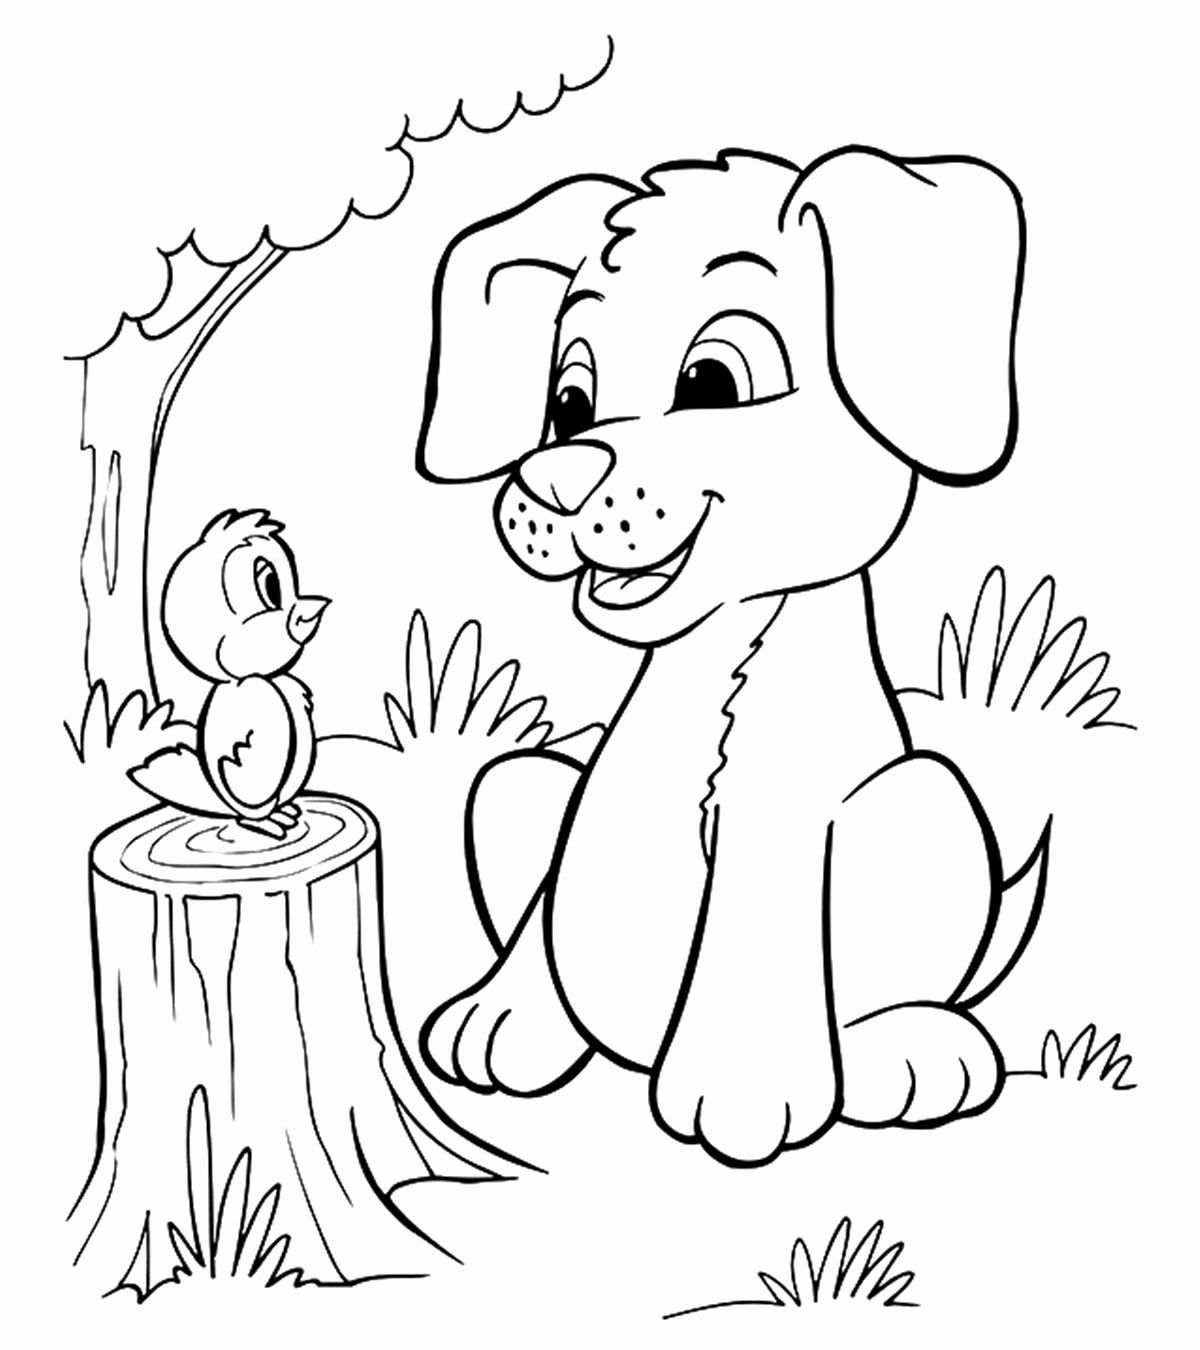 Cute Cartoon Animals Coloring Pages Elegant Dog Coloring Pages Printable Beautiful Animal Colorin In 2020 Puppy Coloring Pages Dog Coloring Page Cartoon Coloring Pages